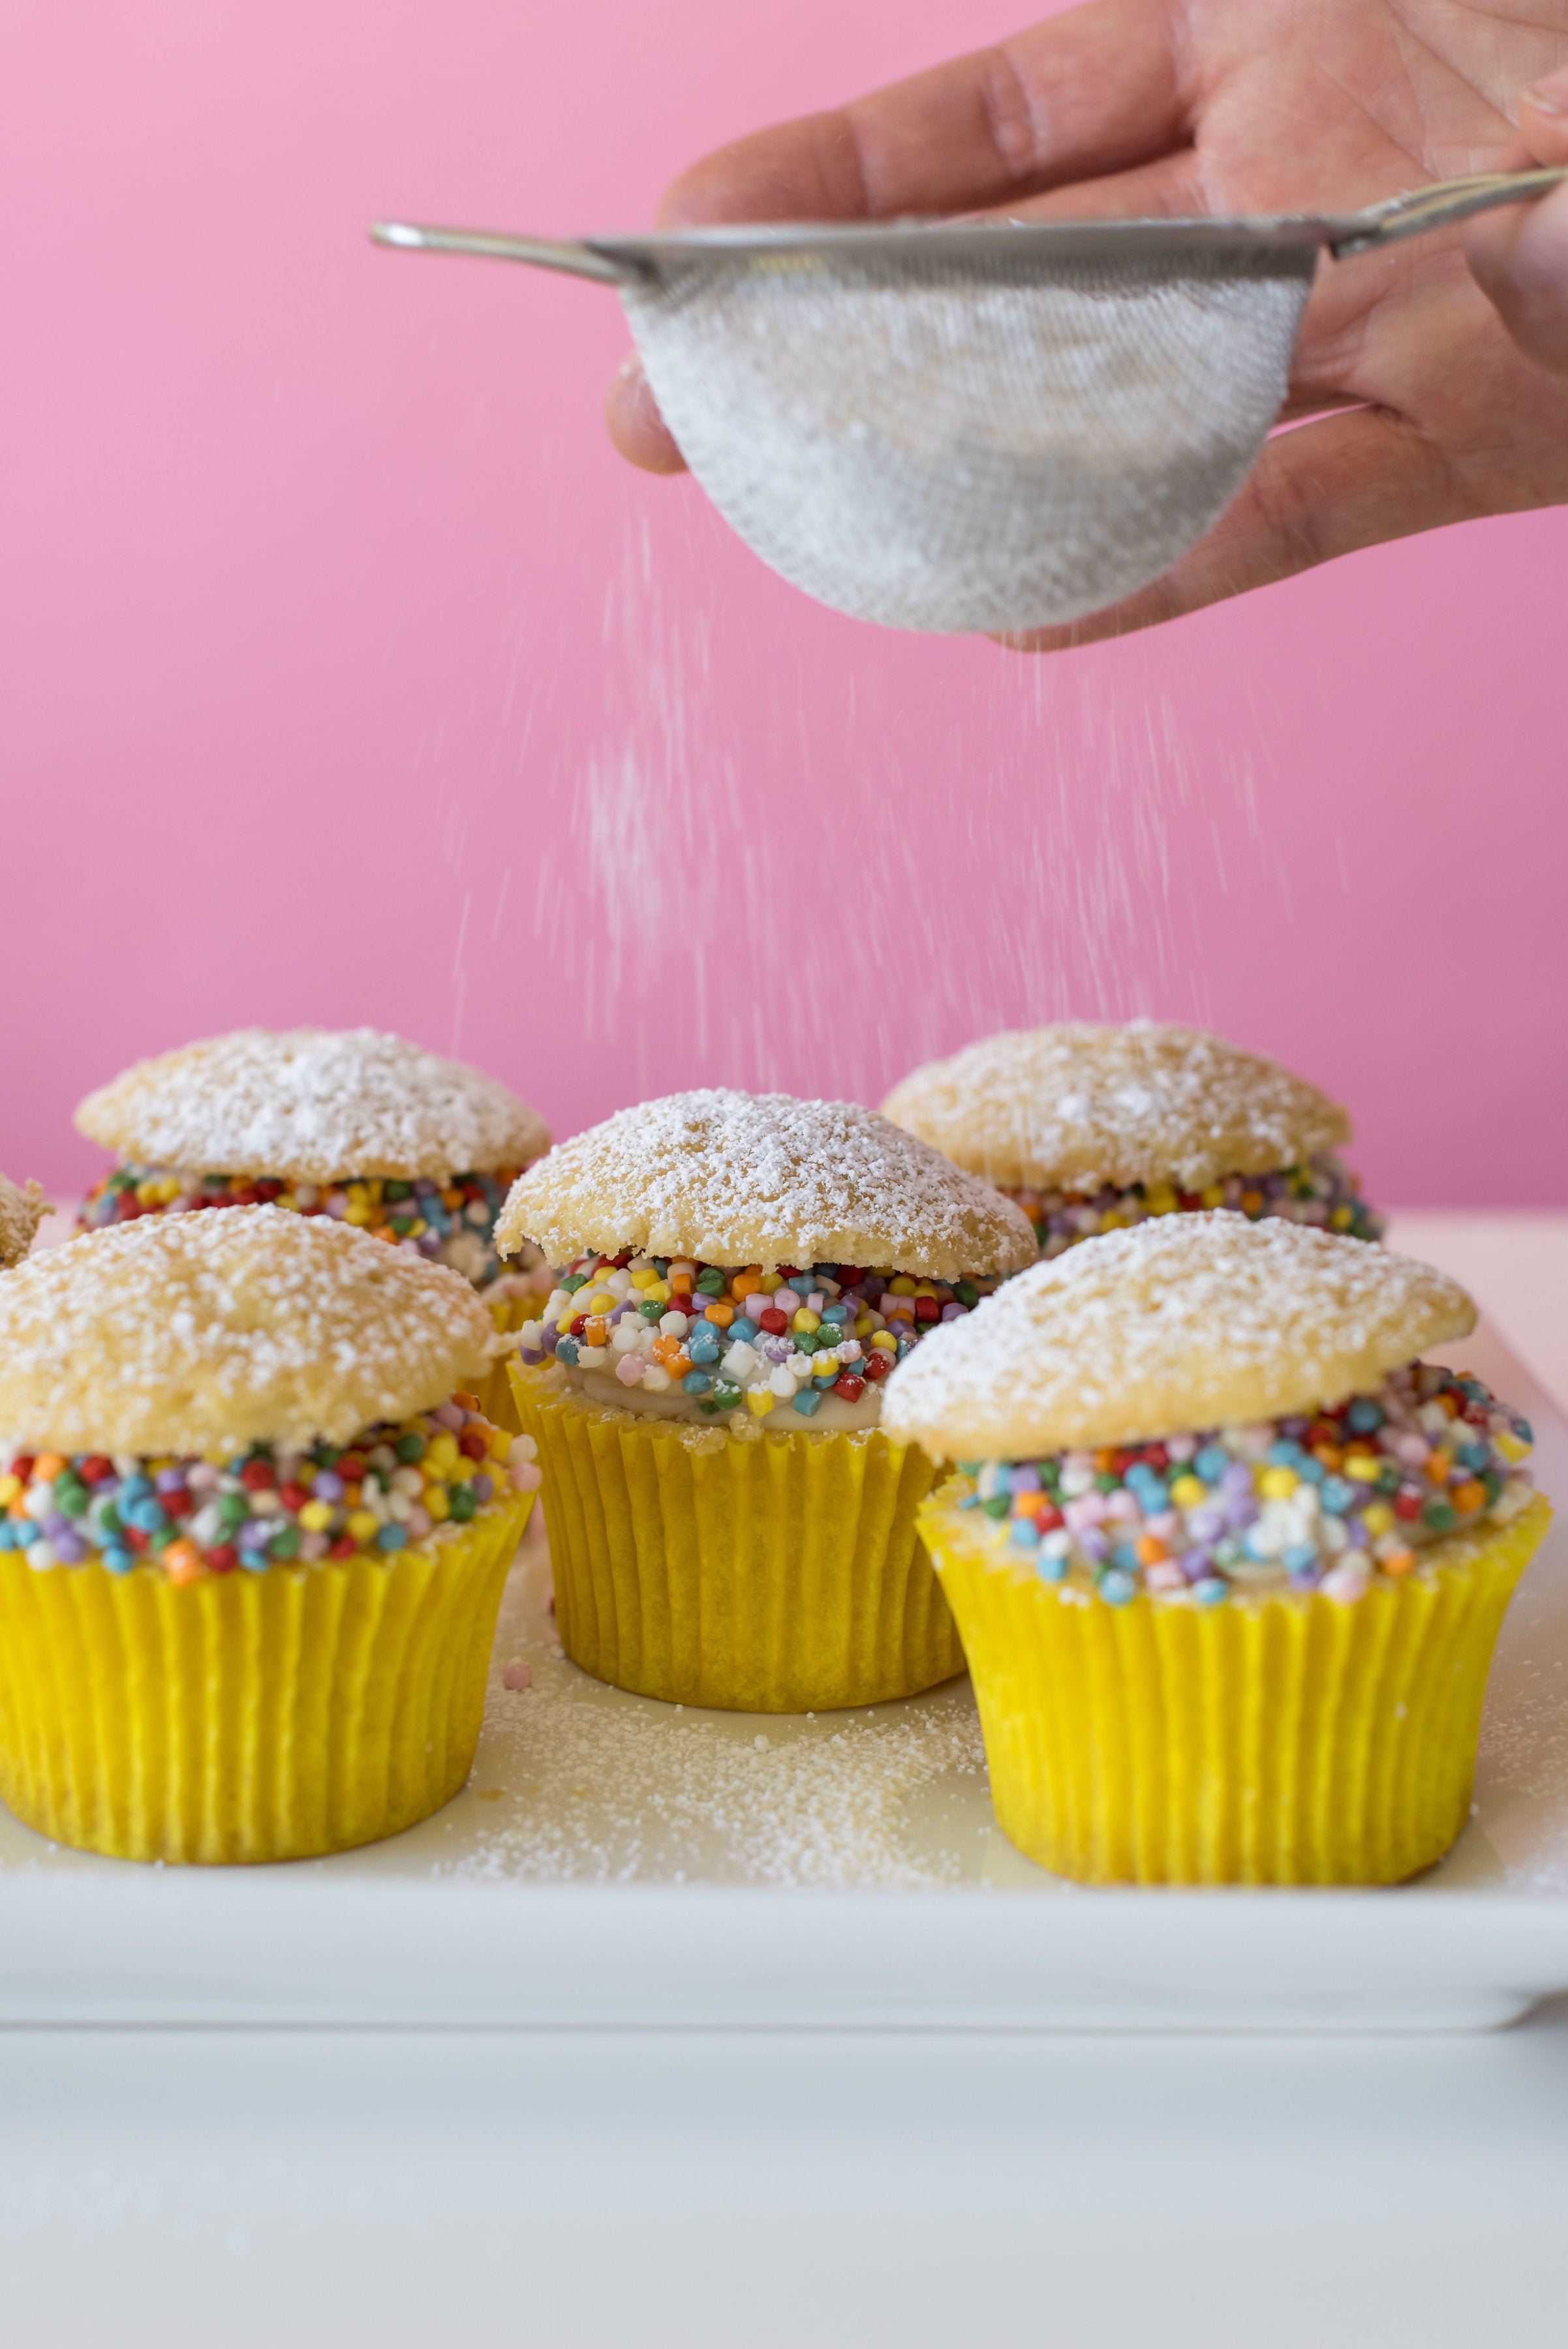 Image of side of five Miss Jones Baking Co Confetti Pop Cream Puff Cupcakes being sprinkled with powdered sugar